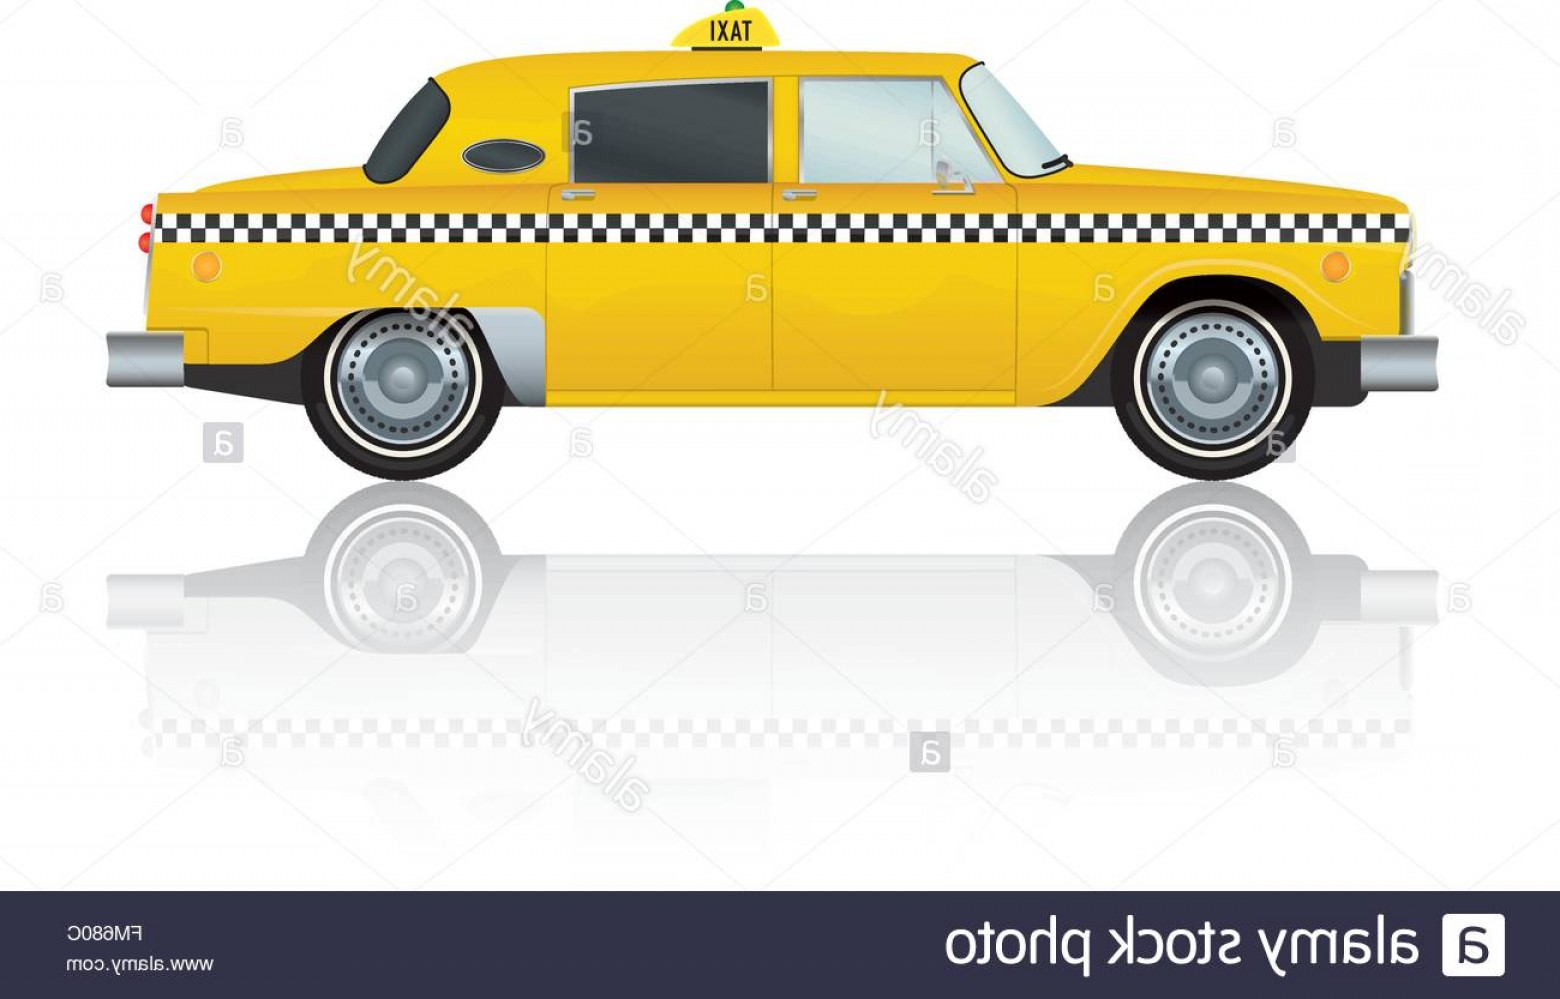 New York Taxi Cab Vector: Stock Photo Vintage New York Yellow Taxi Cab